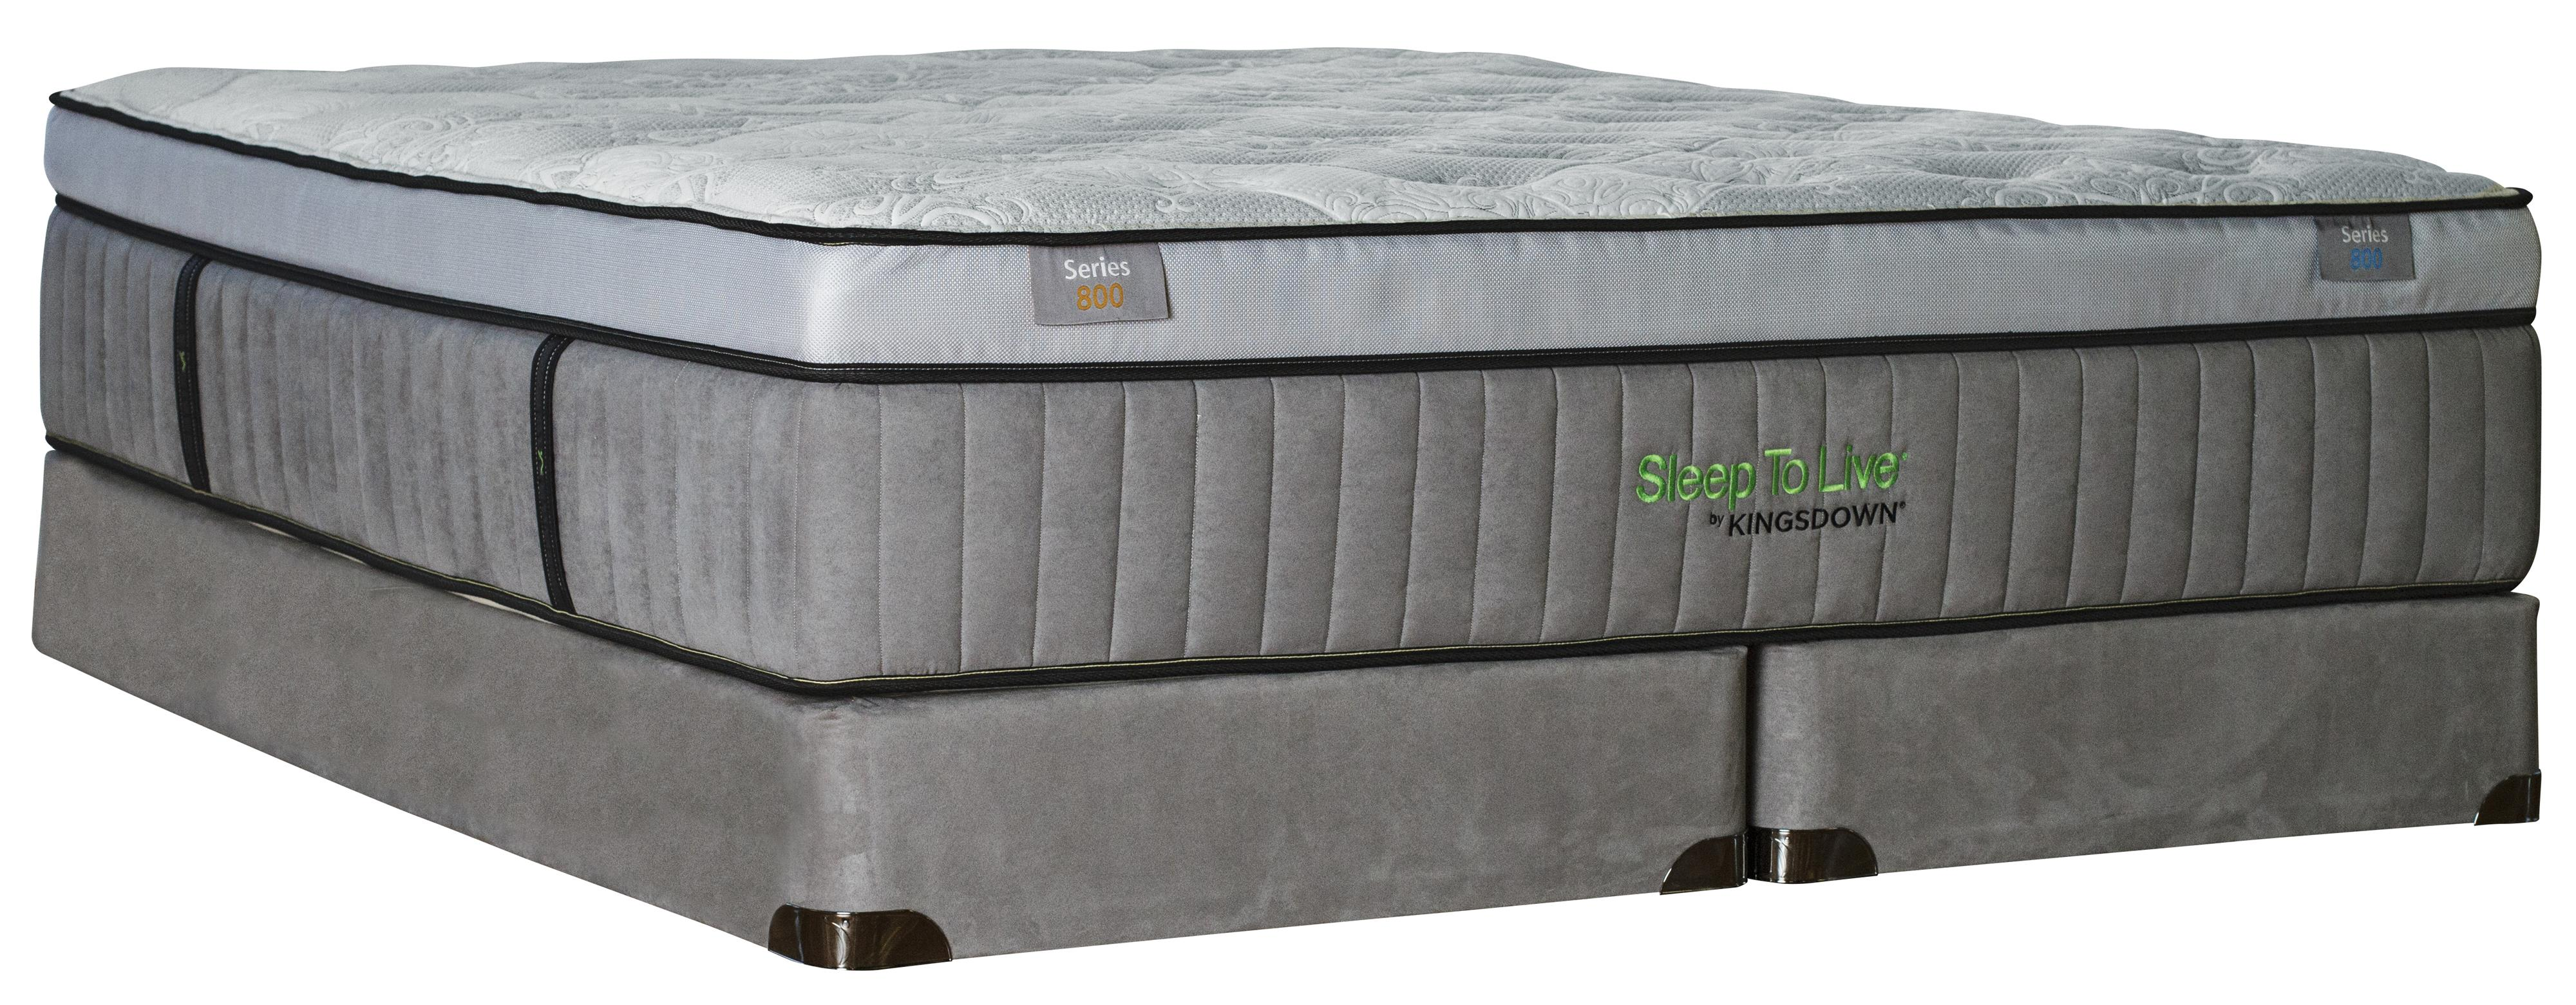 Kingsdown Sleep to Live 800 Full Luxurios Box Top Mattress - Item Number: Series800-F